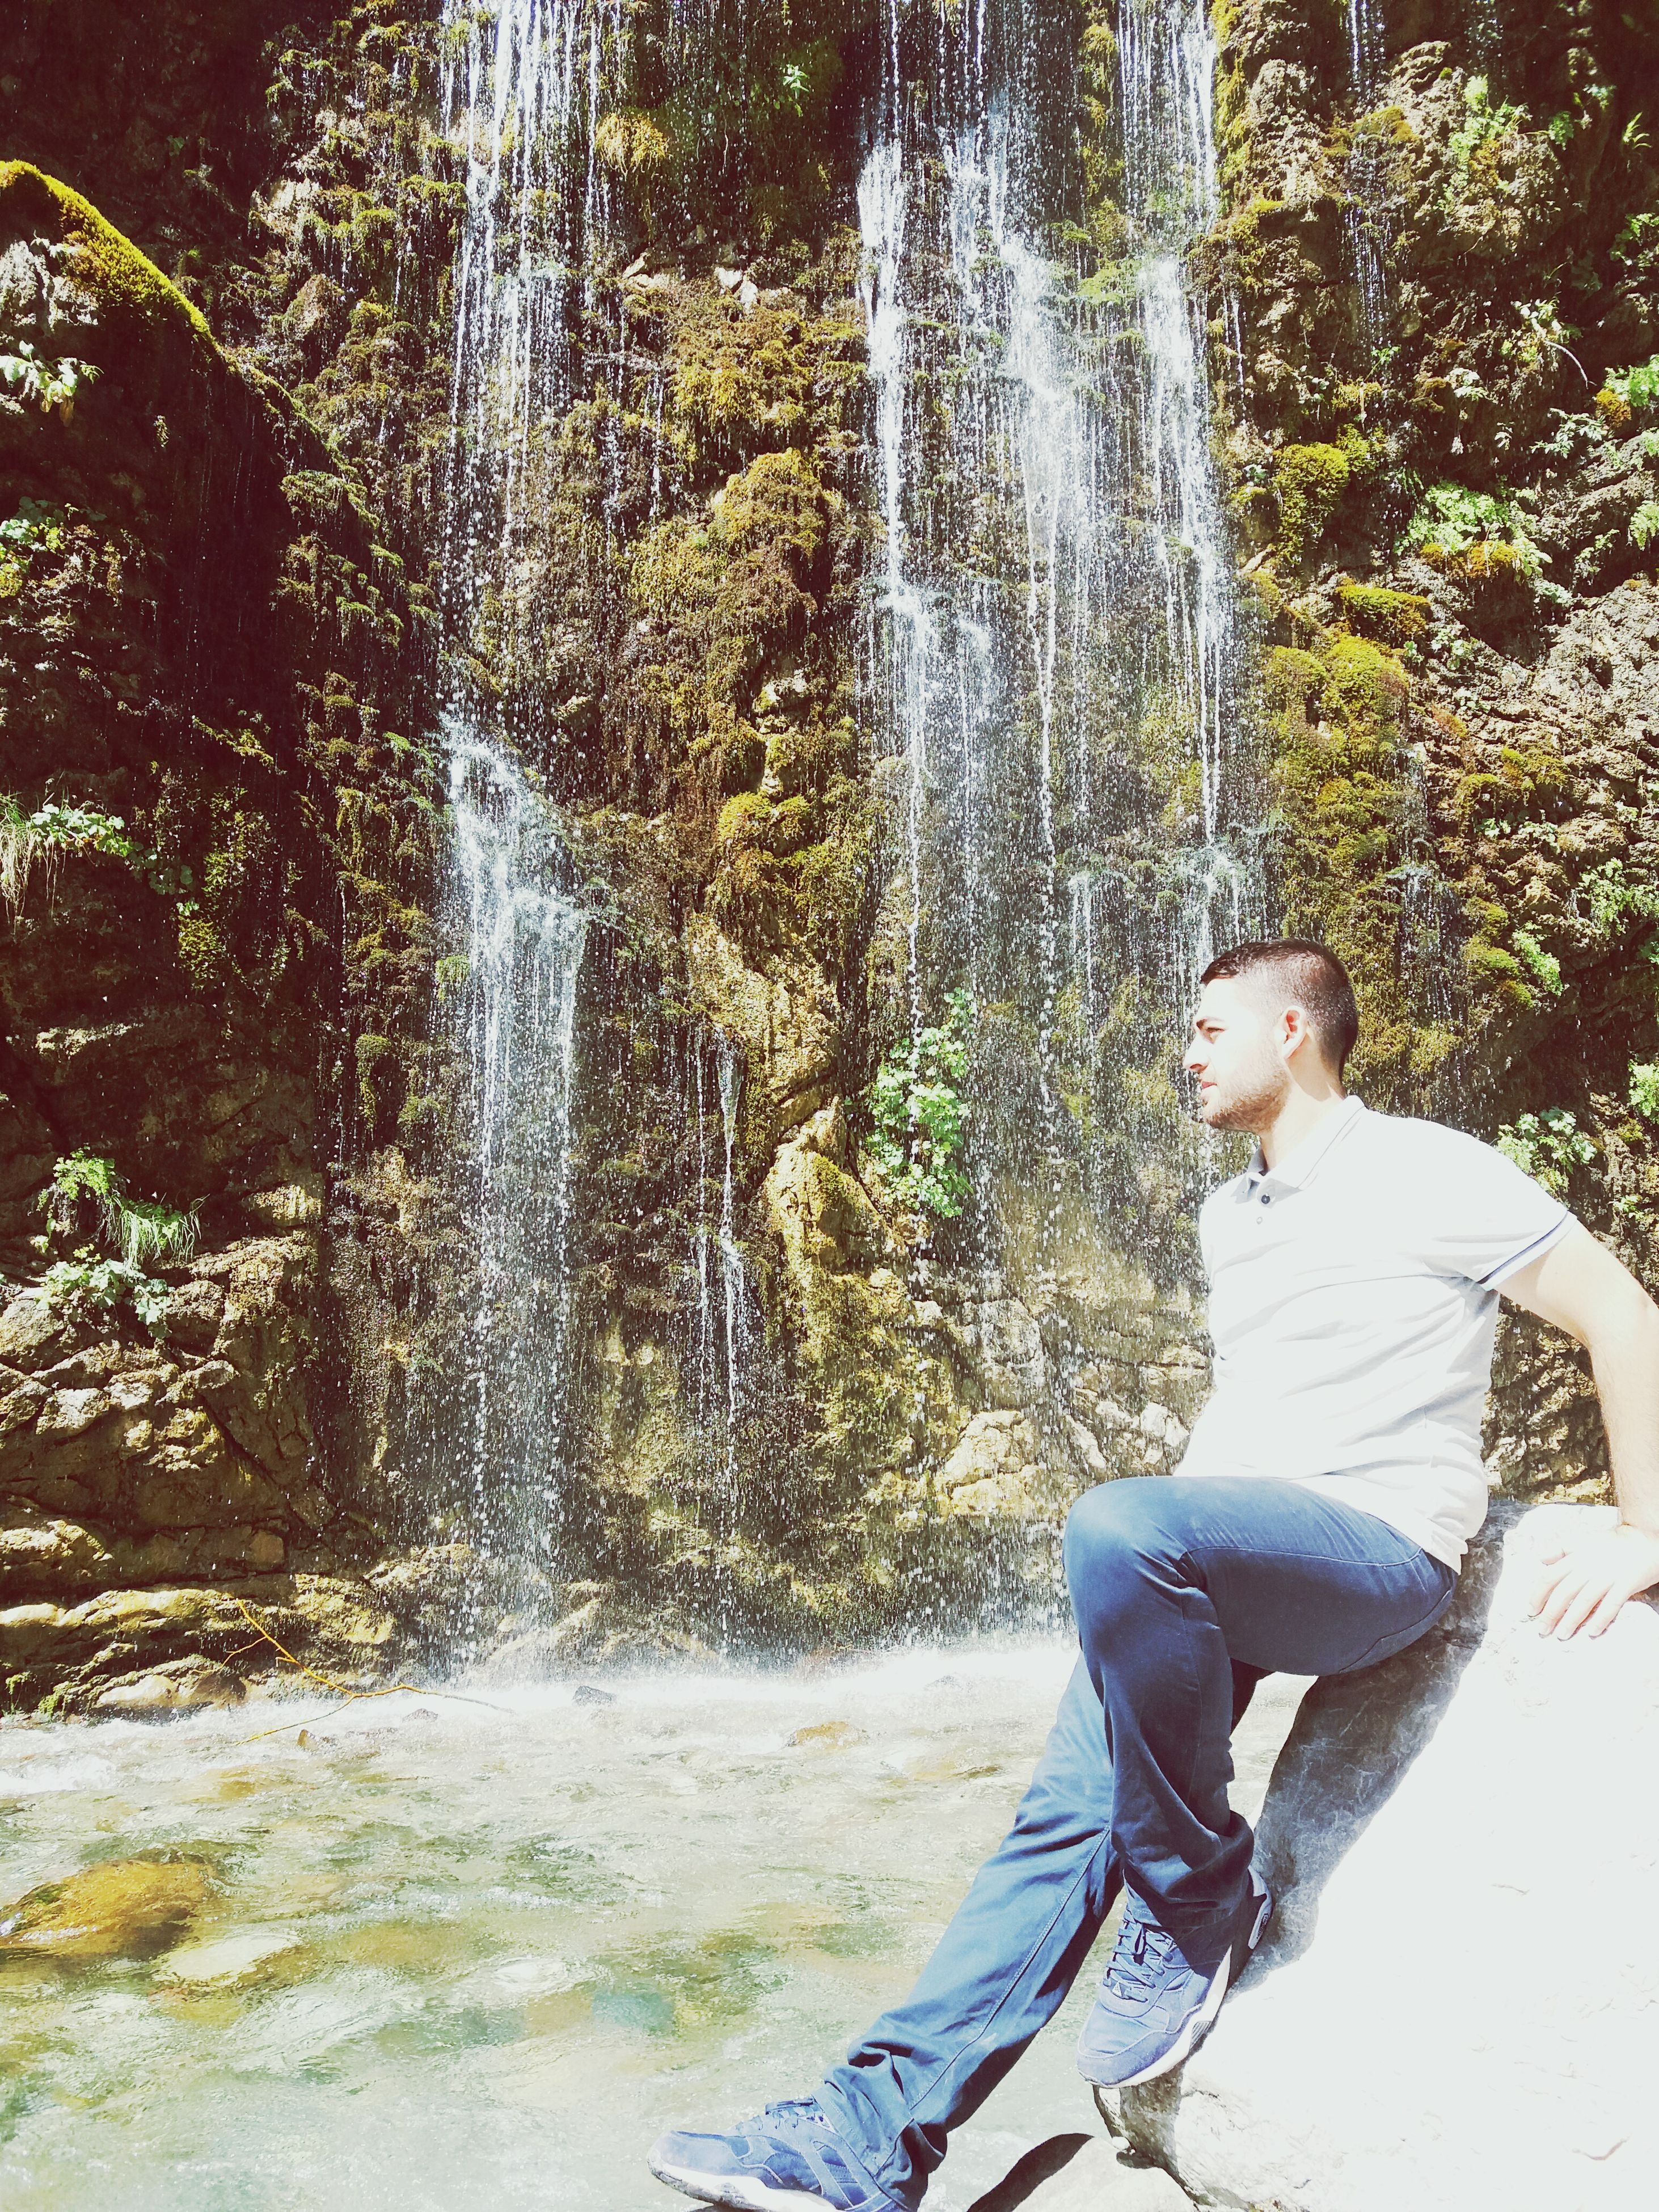 side view, motion, relaxation, sitting, full length, young adult, spraying, casual clothing, waterfall, day, summer, outdoors, person, enjoyment, park, nature, tranquil scene, contemplation, tranquility, non-urban scene